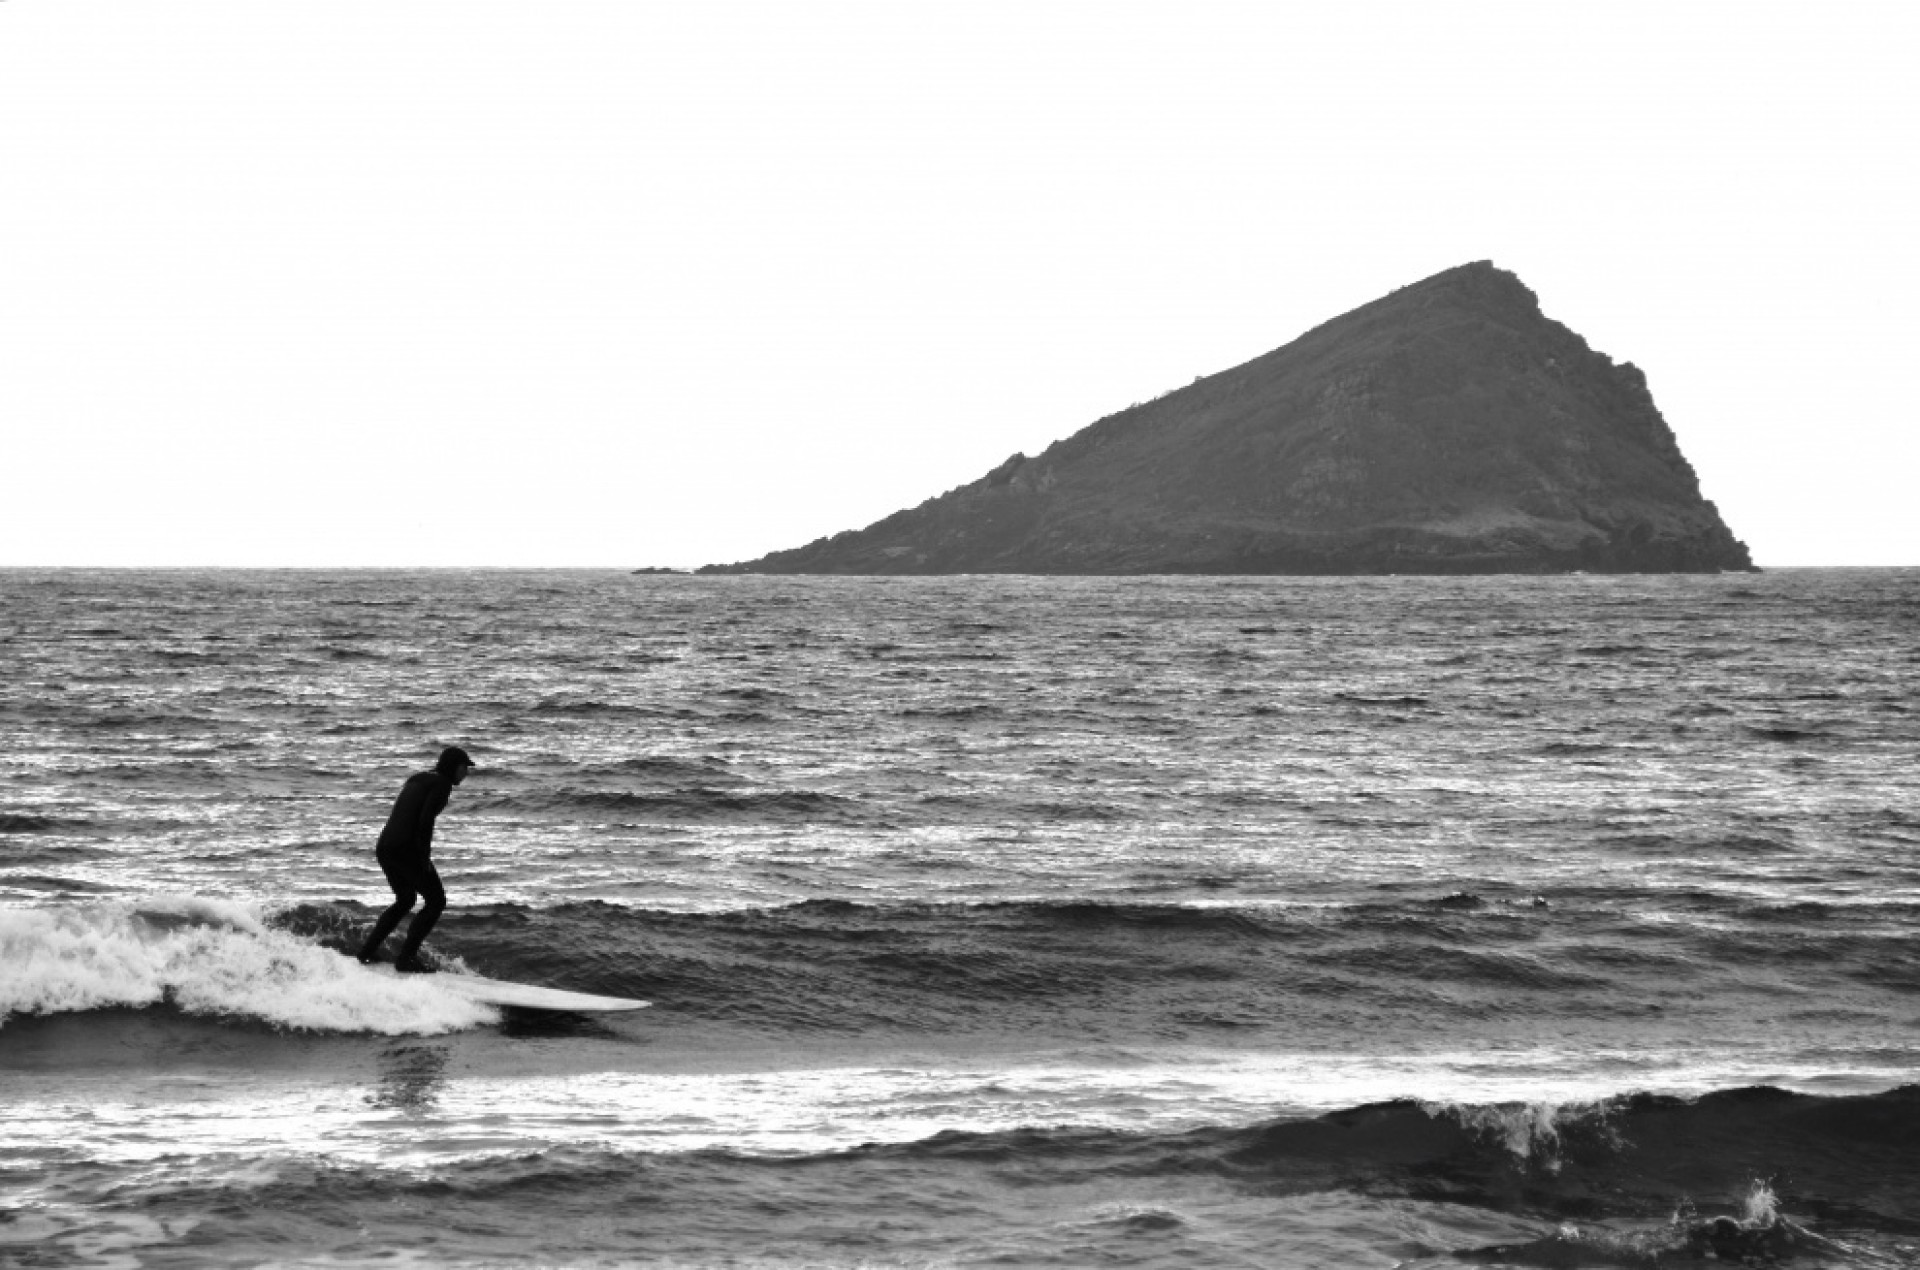 josephriou's photo of Wembury